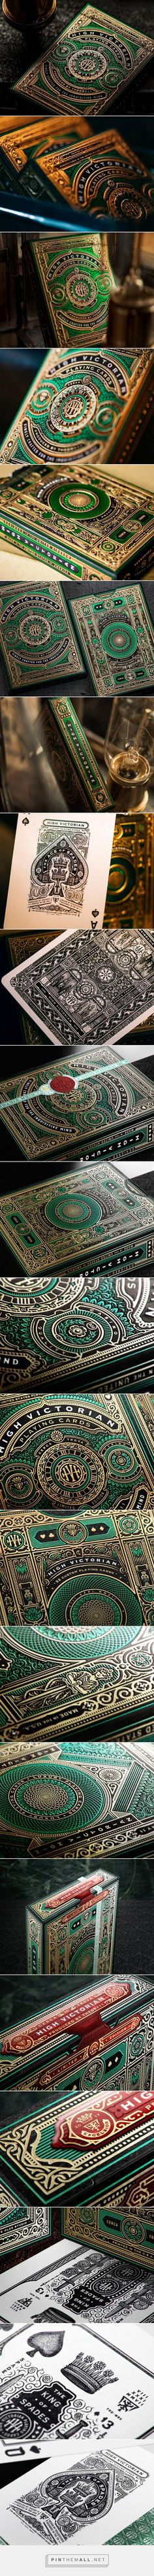 """""""Over 18 months in the making - and it shows."""" theory11 High Victorian Playing Cards packaging design by Joe White - https://www.packagingoftheworld.com/2018/03/high-victorian-playing-cards.html"""